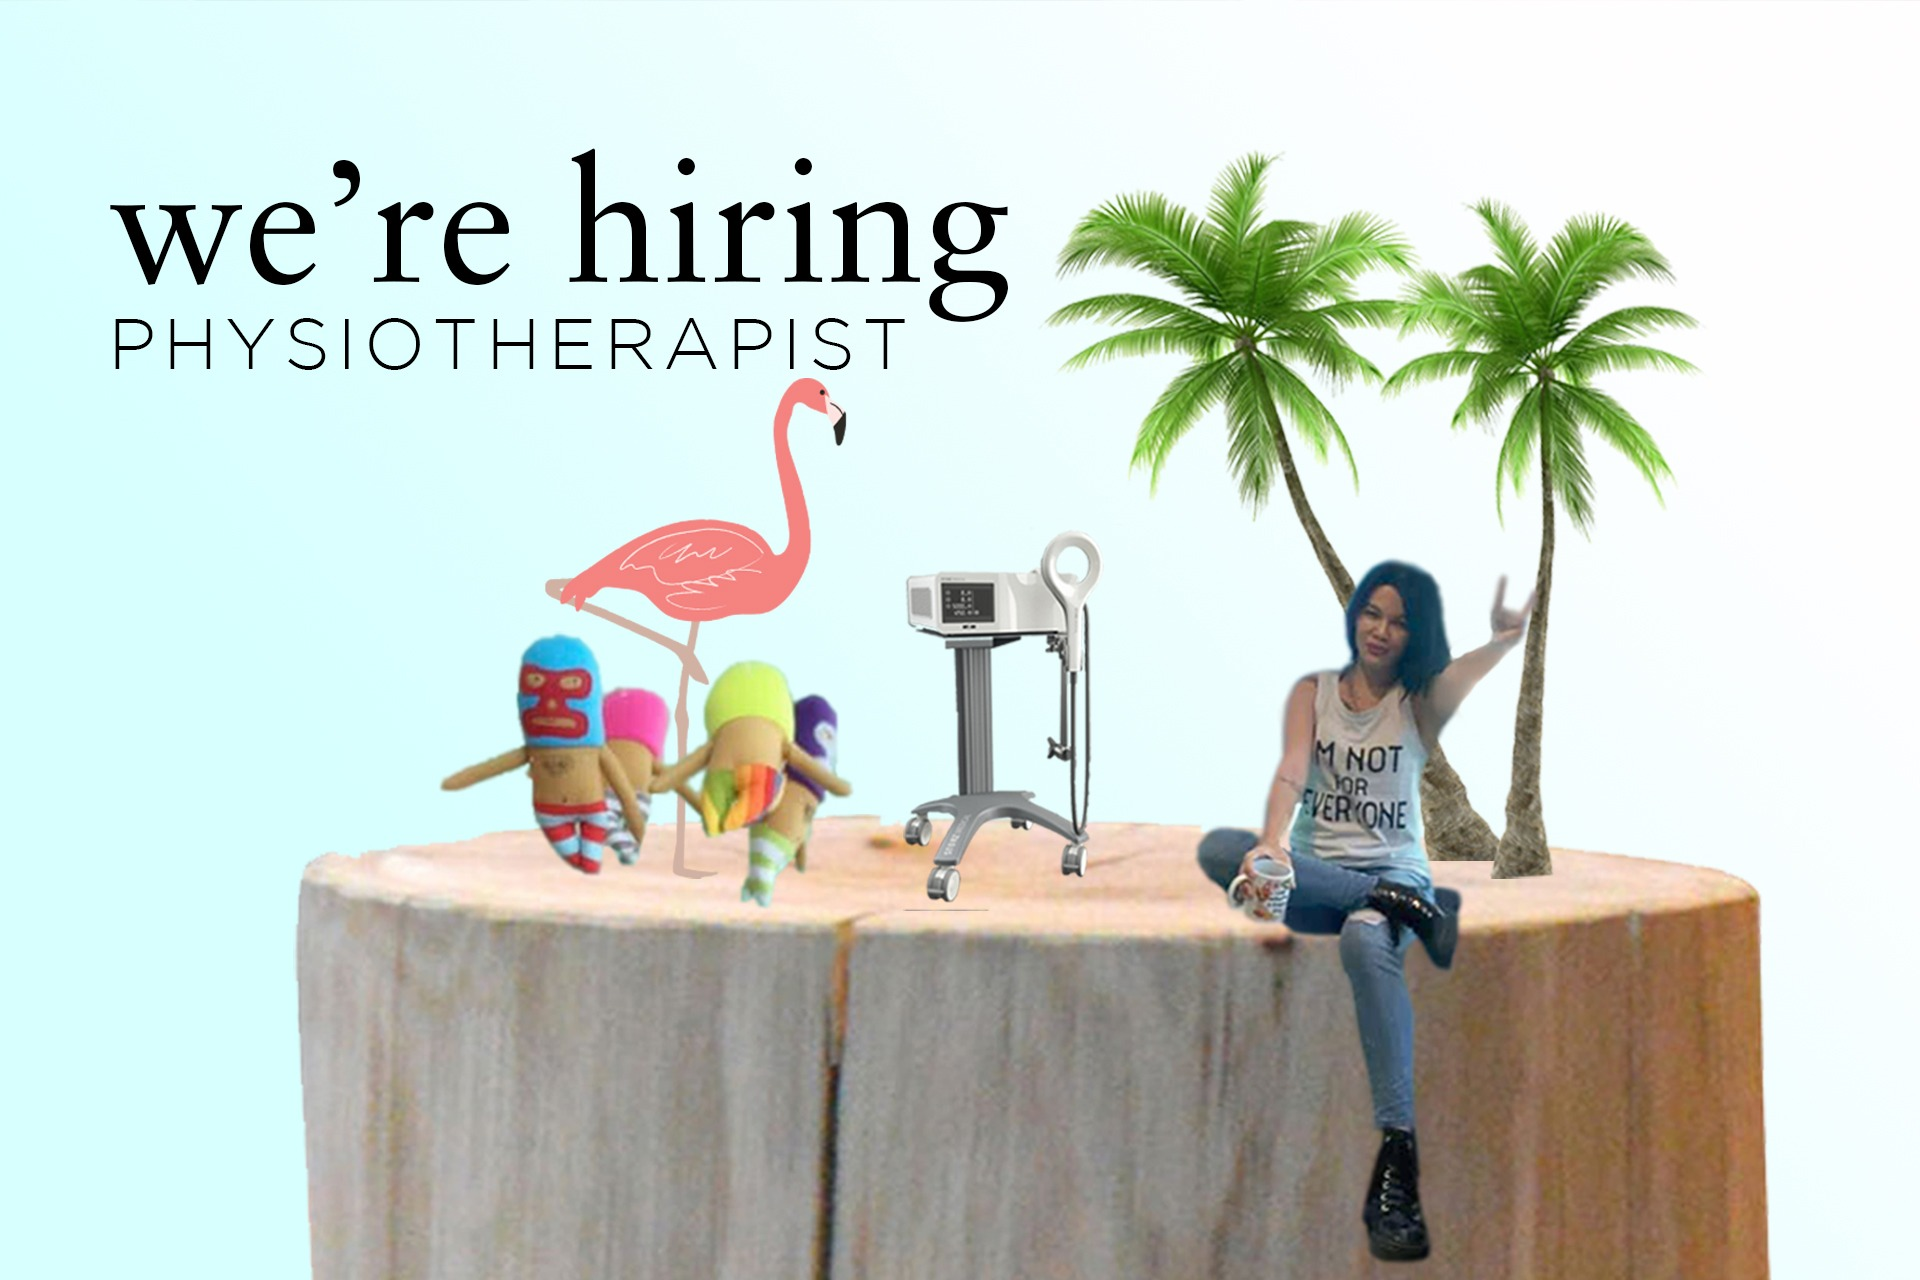 HelloPhysio Physiotherapist We're Hiring in Novena